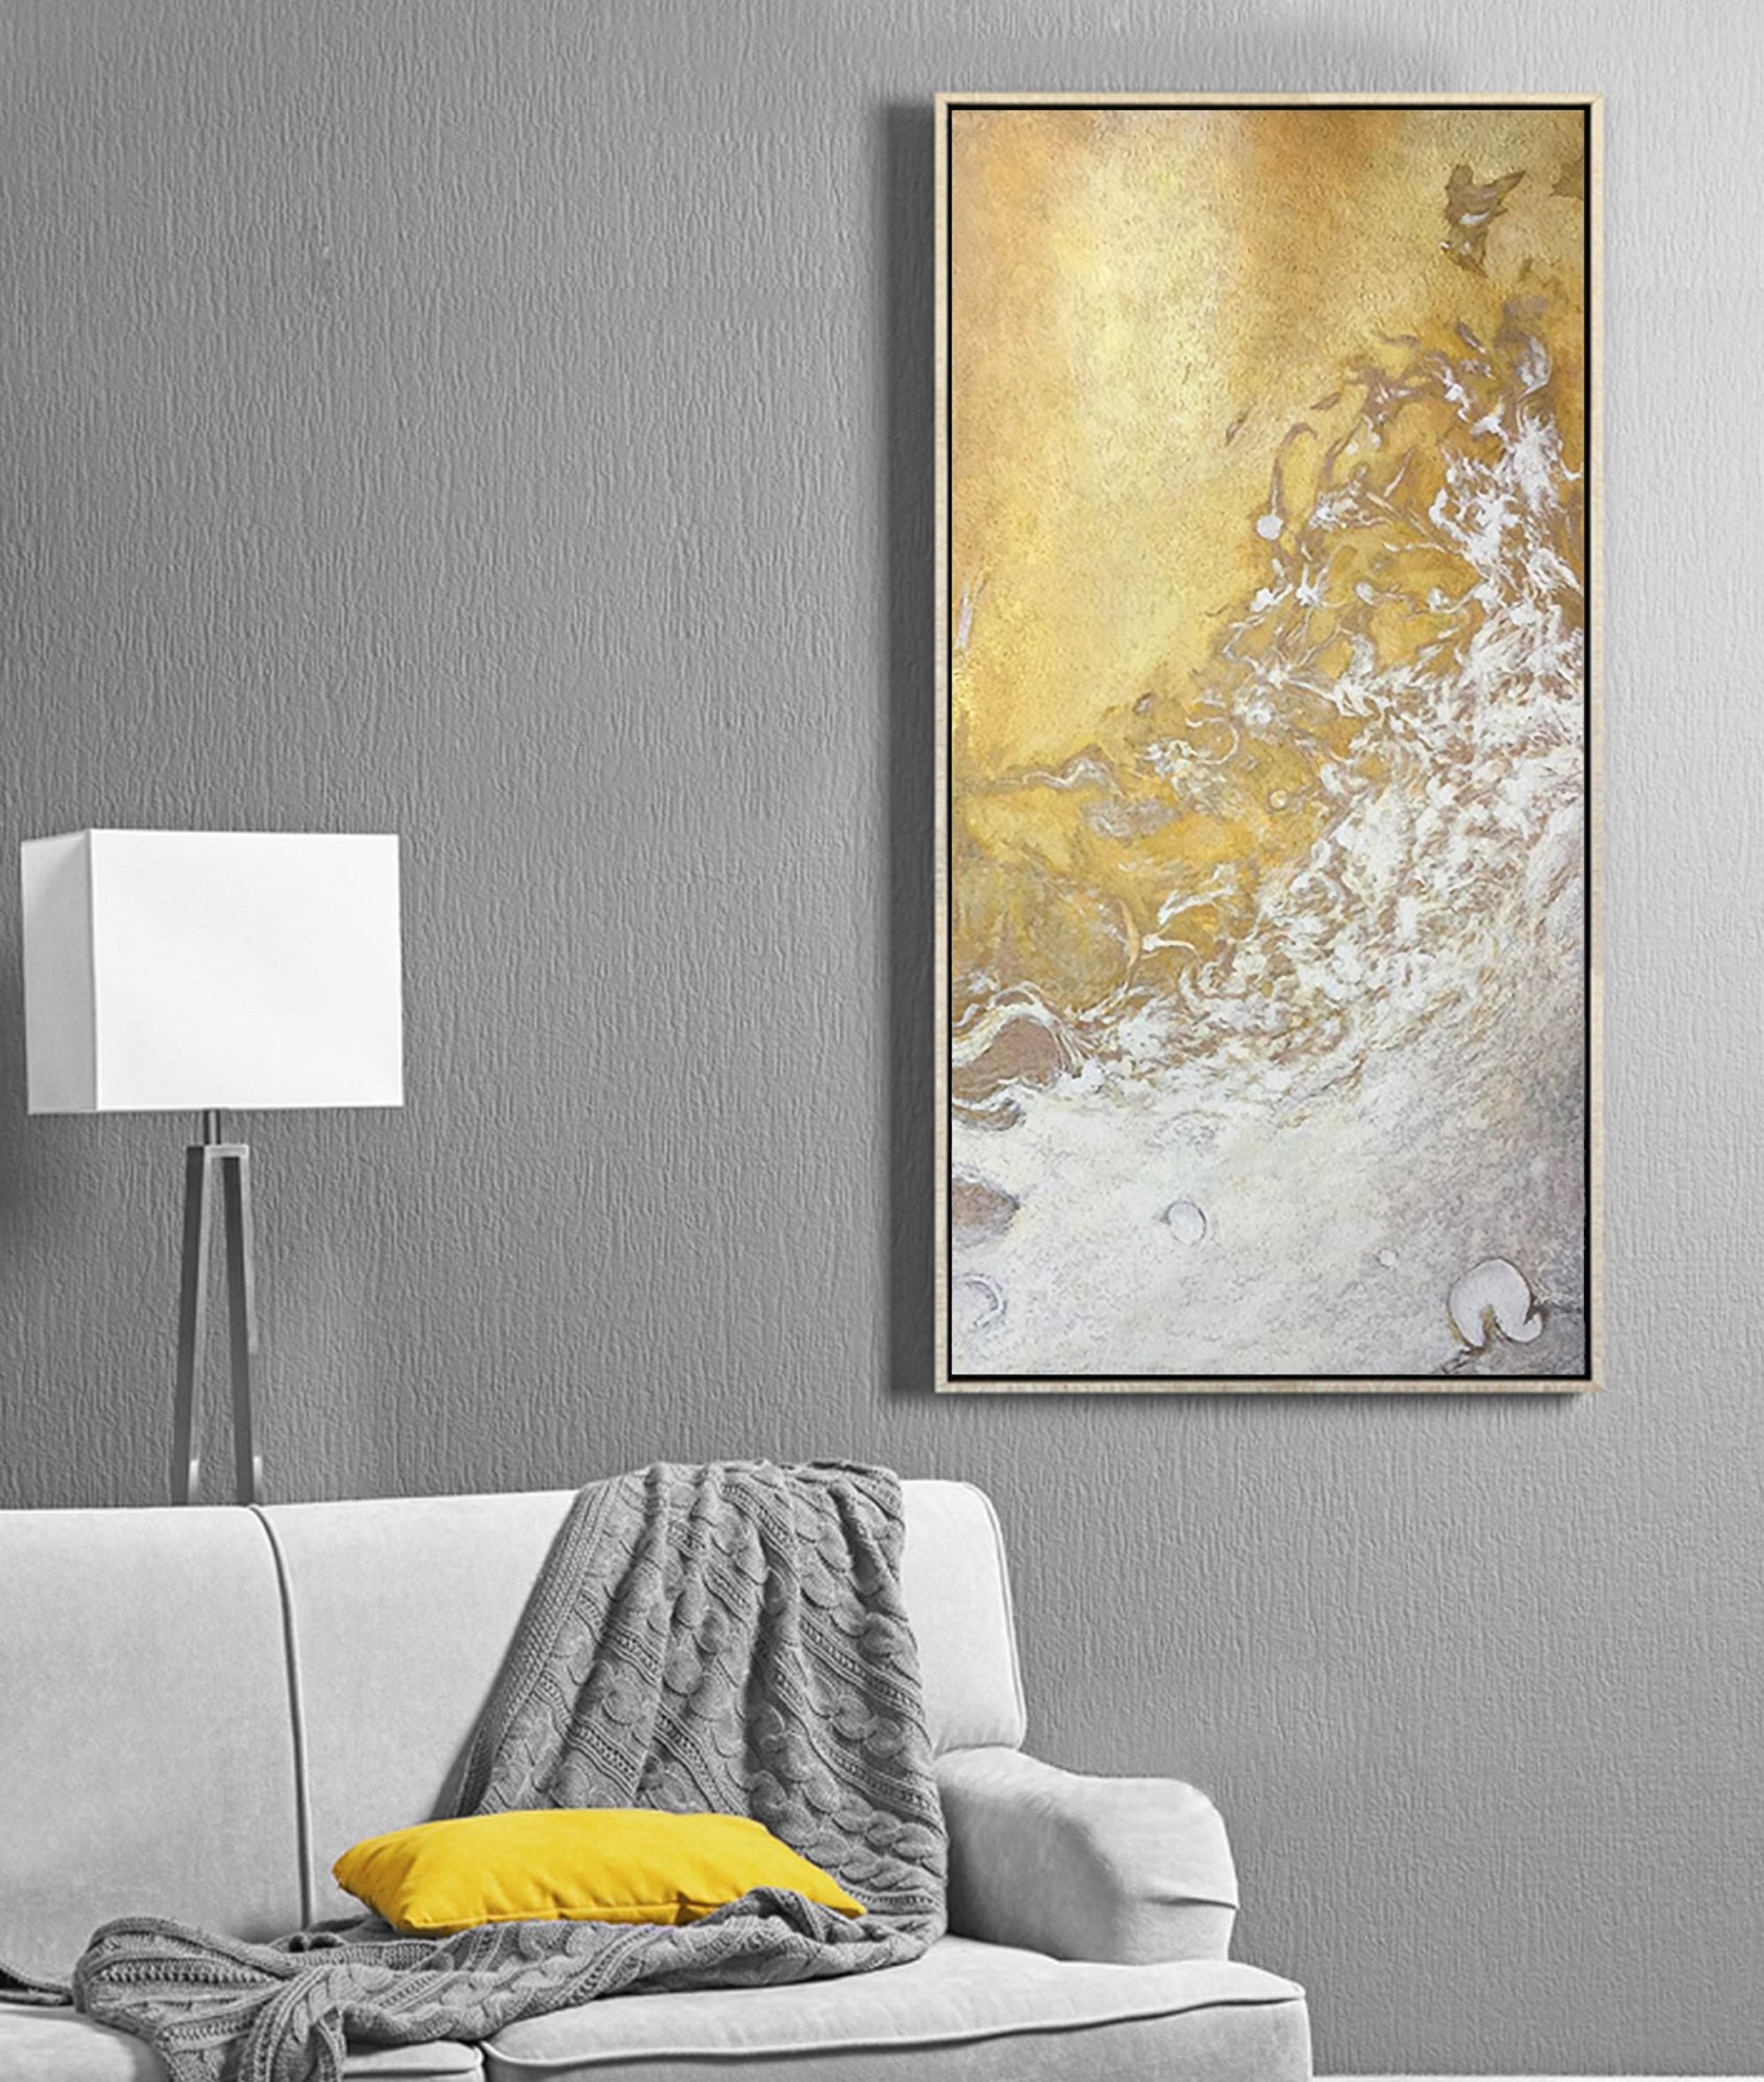 Large White Gold Abstract Art Oil Painting On Canvas Cloud Etsy Abstract Canvas Wall Art Oil Painting On Canvas Gold Art Painting